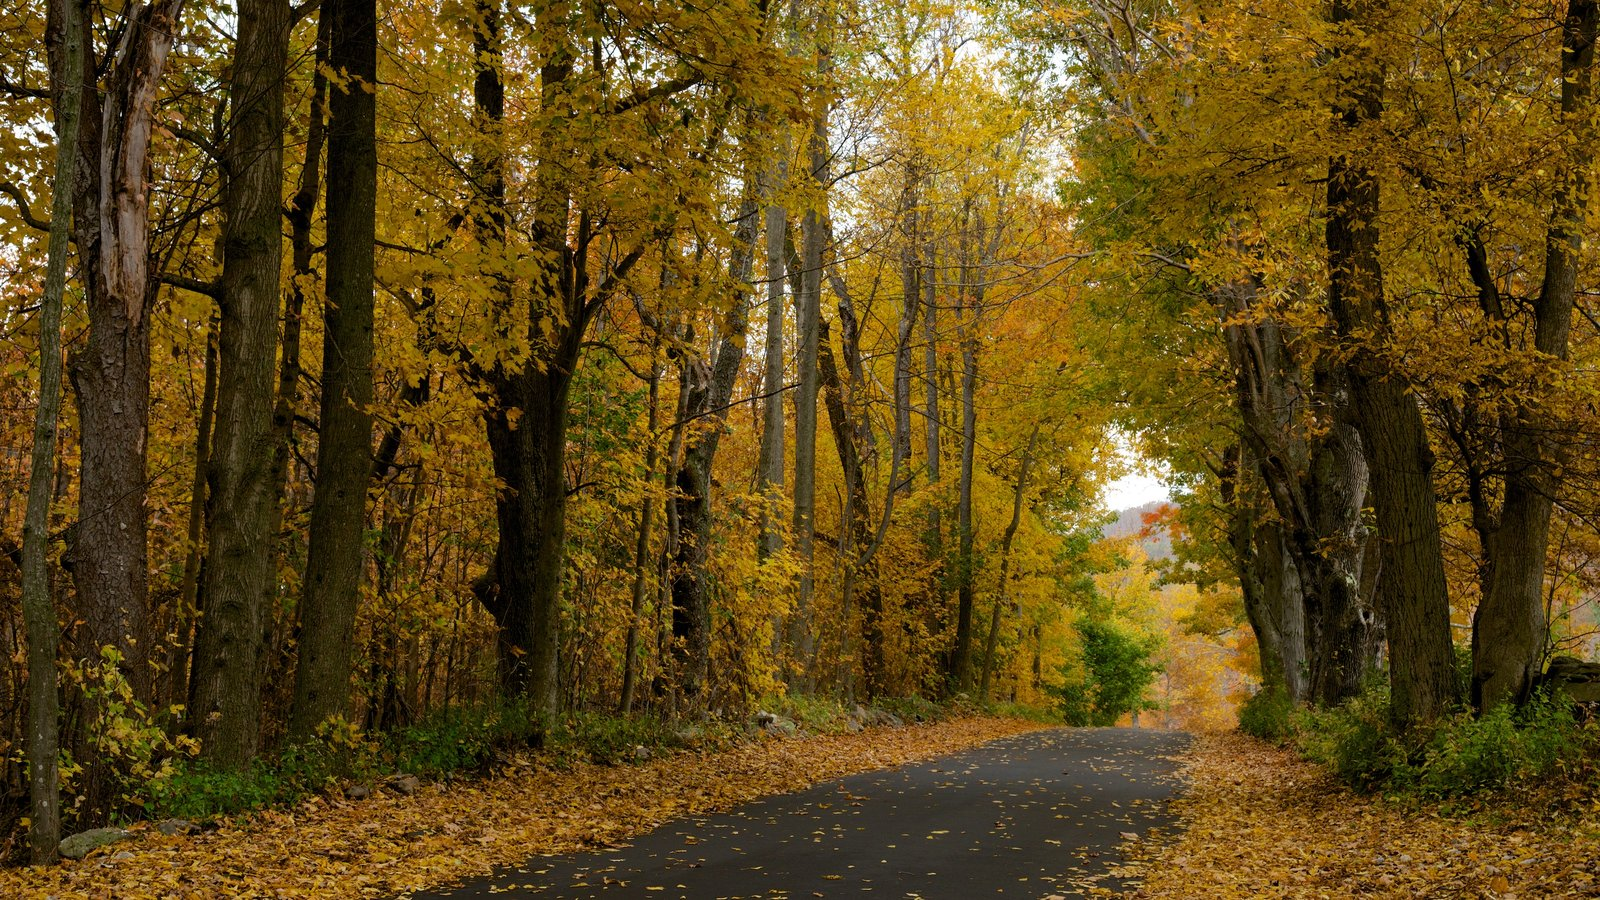 Massachusetts showing tranquil scenes, forests and fall colors